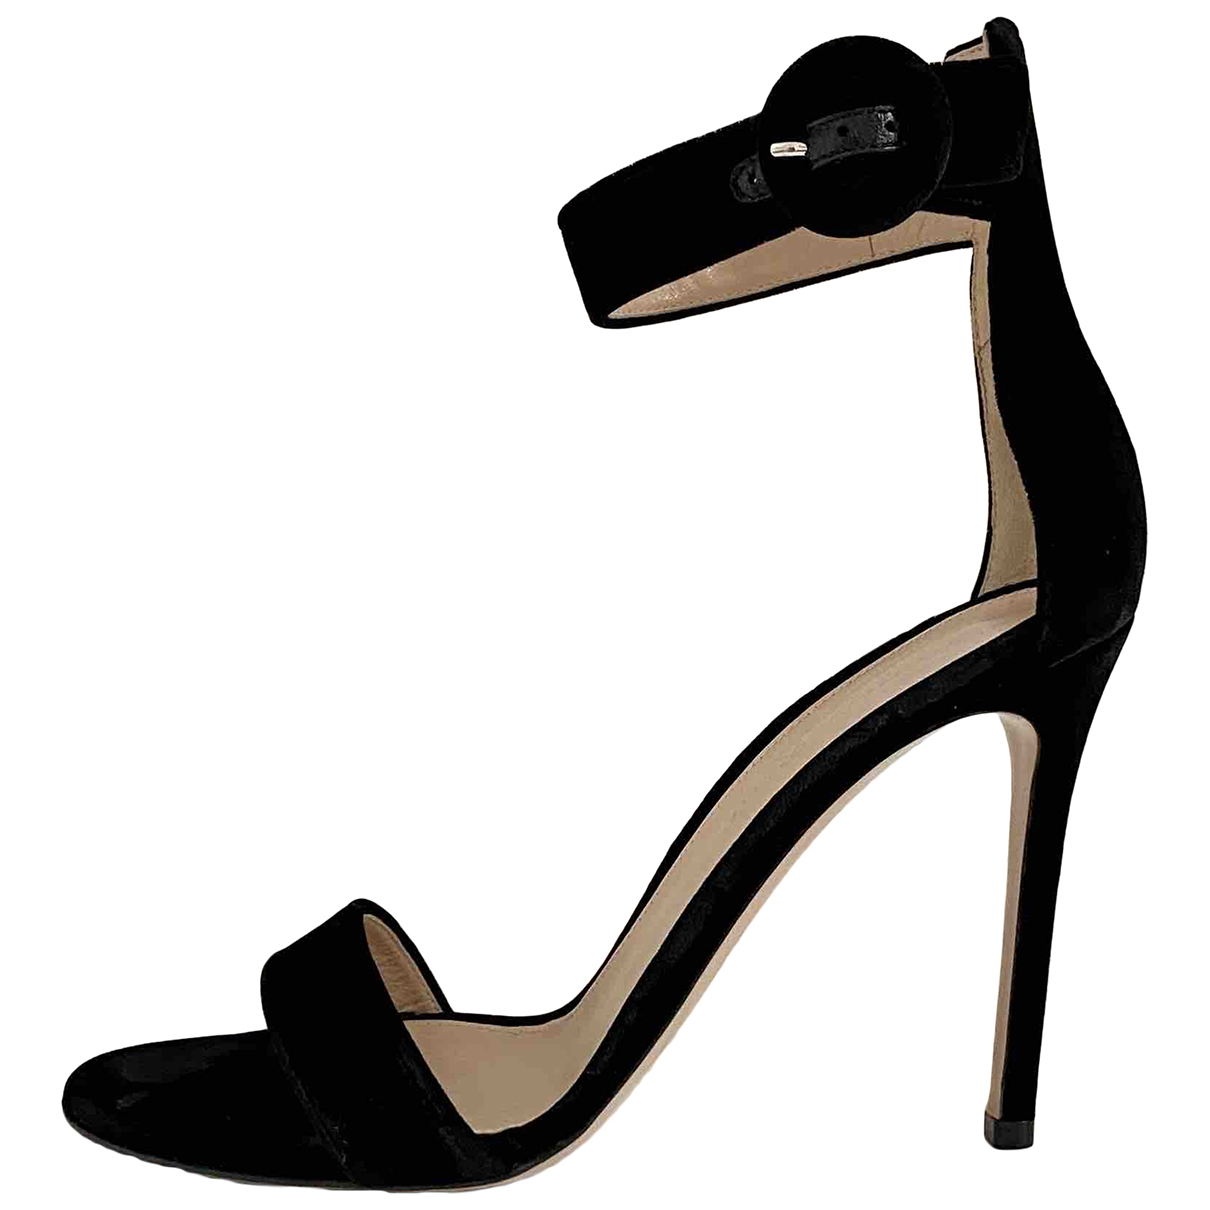 Gianvito Rossi Portofino Black Suede Sandals for Women 37.5 EU